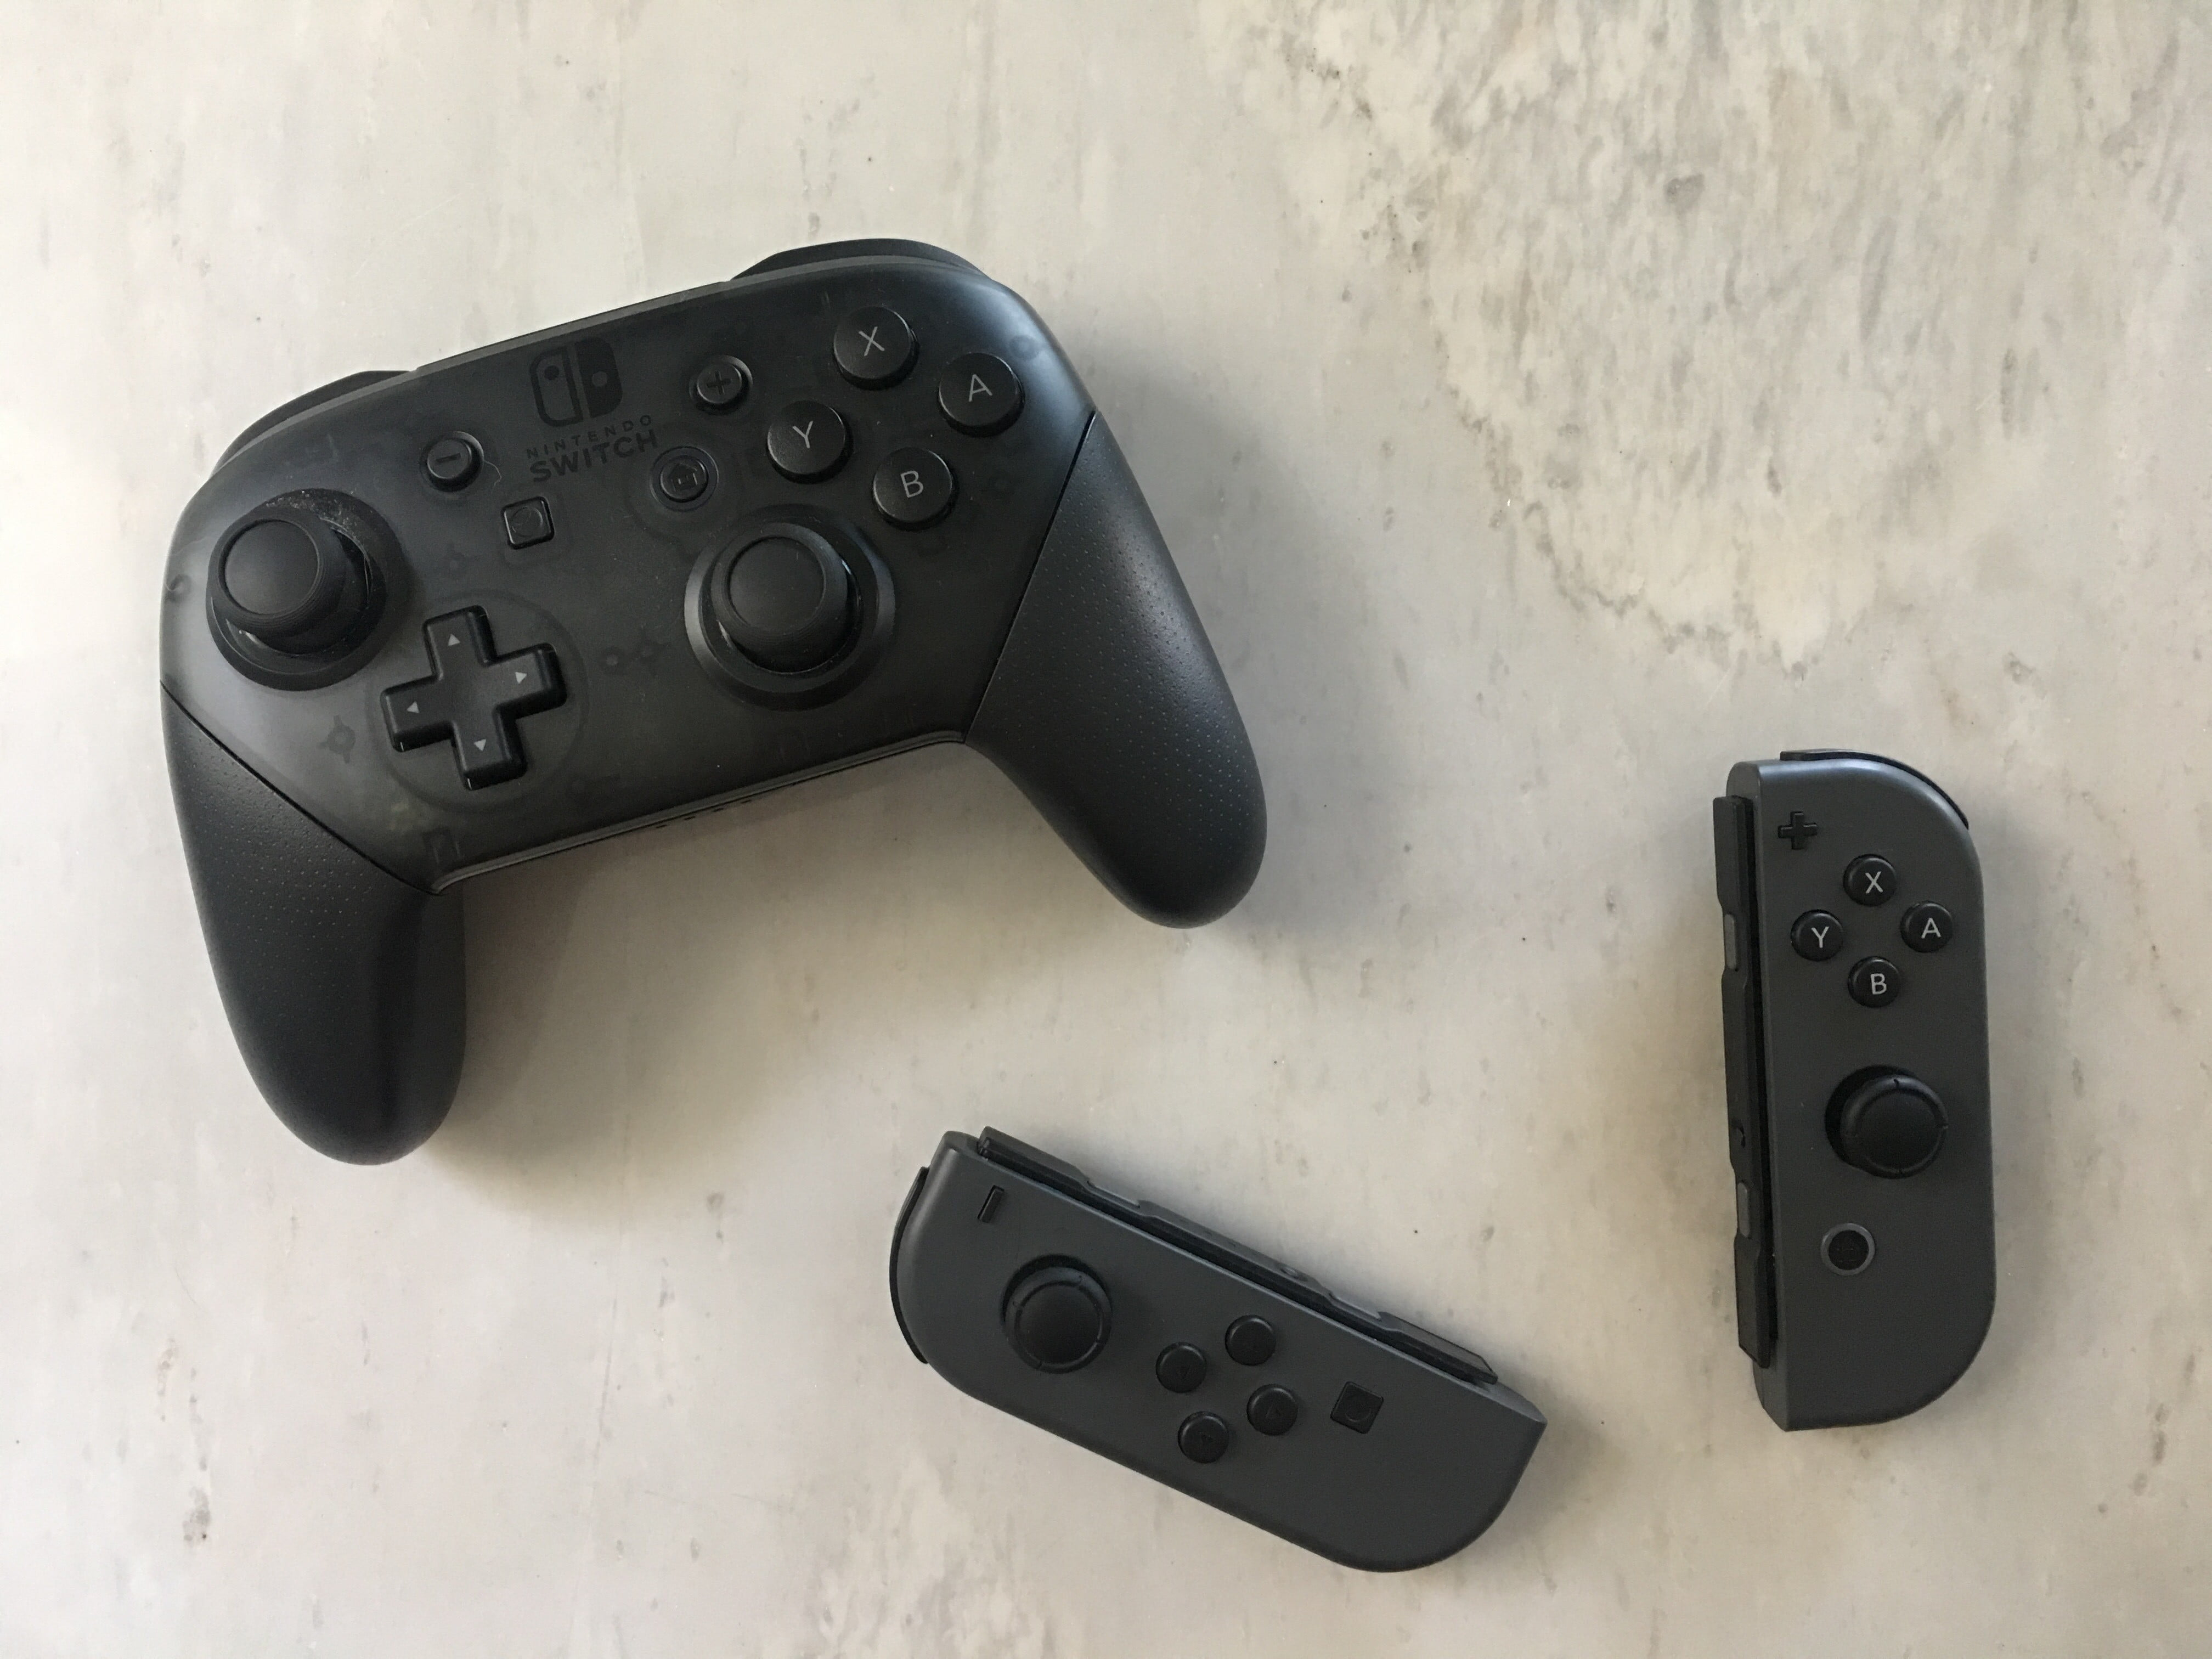 How To Connect A Controller To A Pc On Fortnite How To Connect A Nintendo Switch Controller To Your Pc Digital Trends